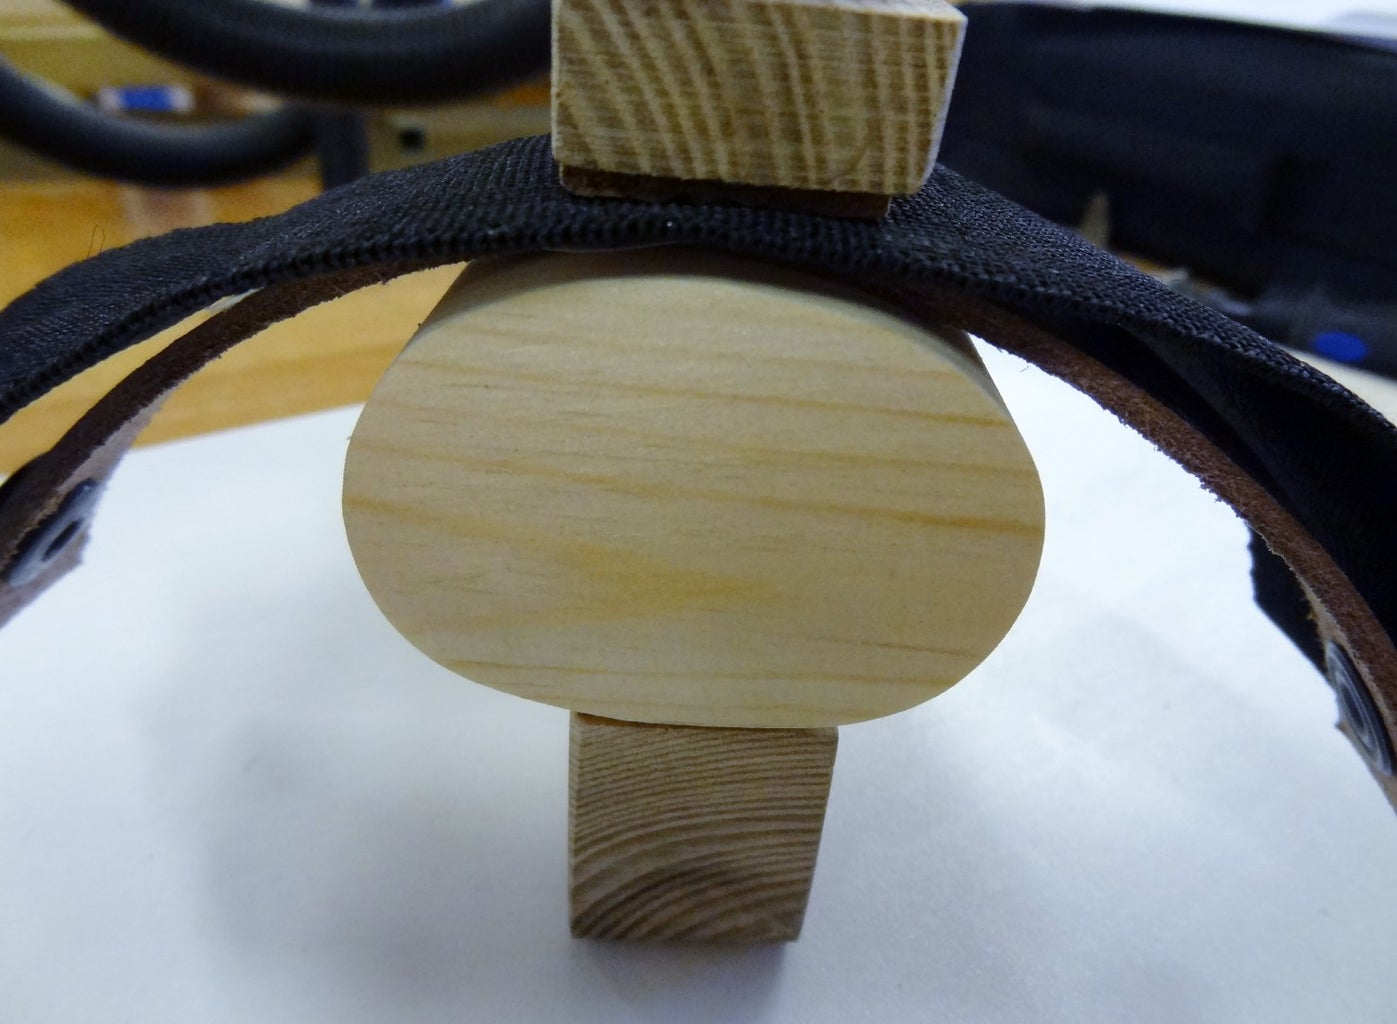 Mount the Plate on Leather Strip